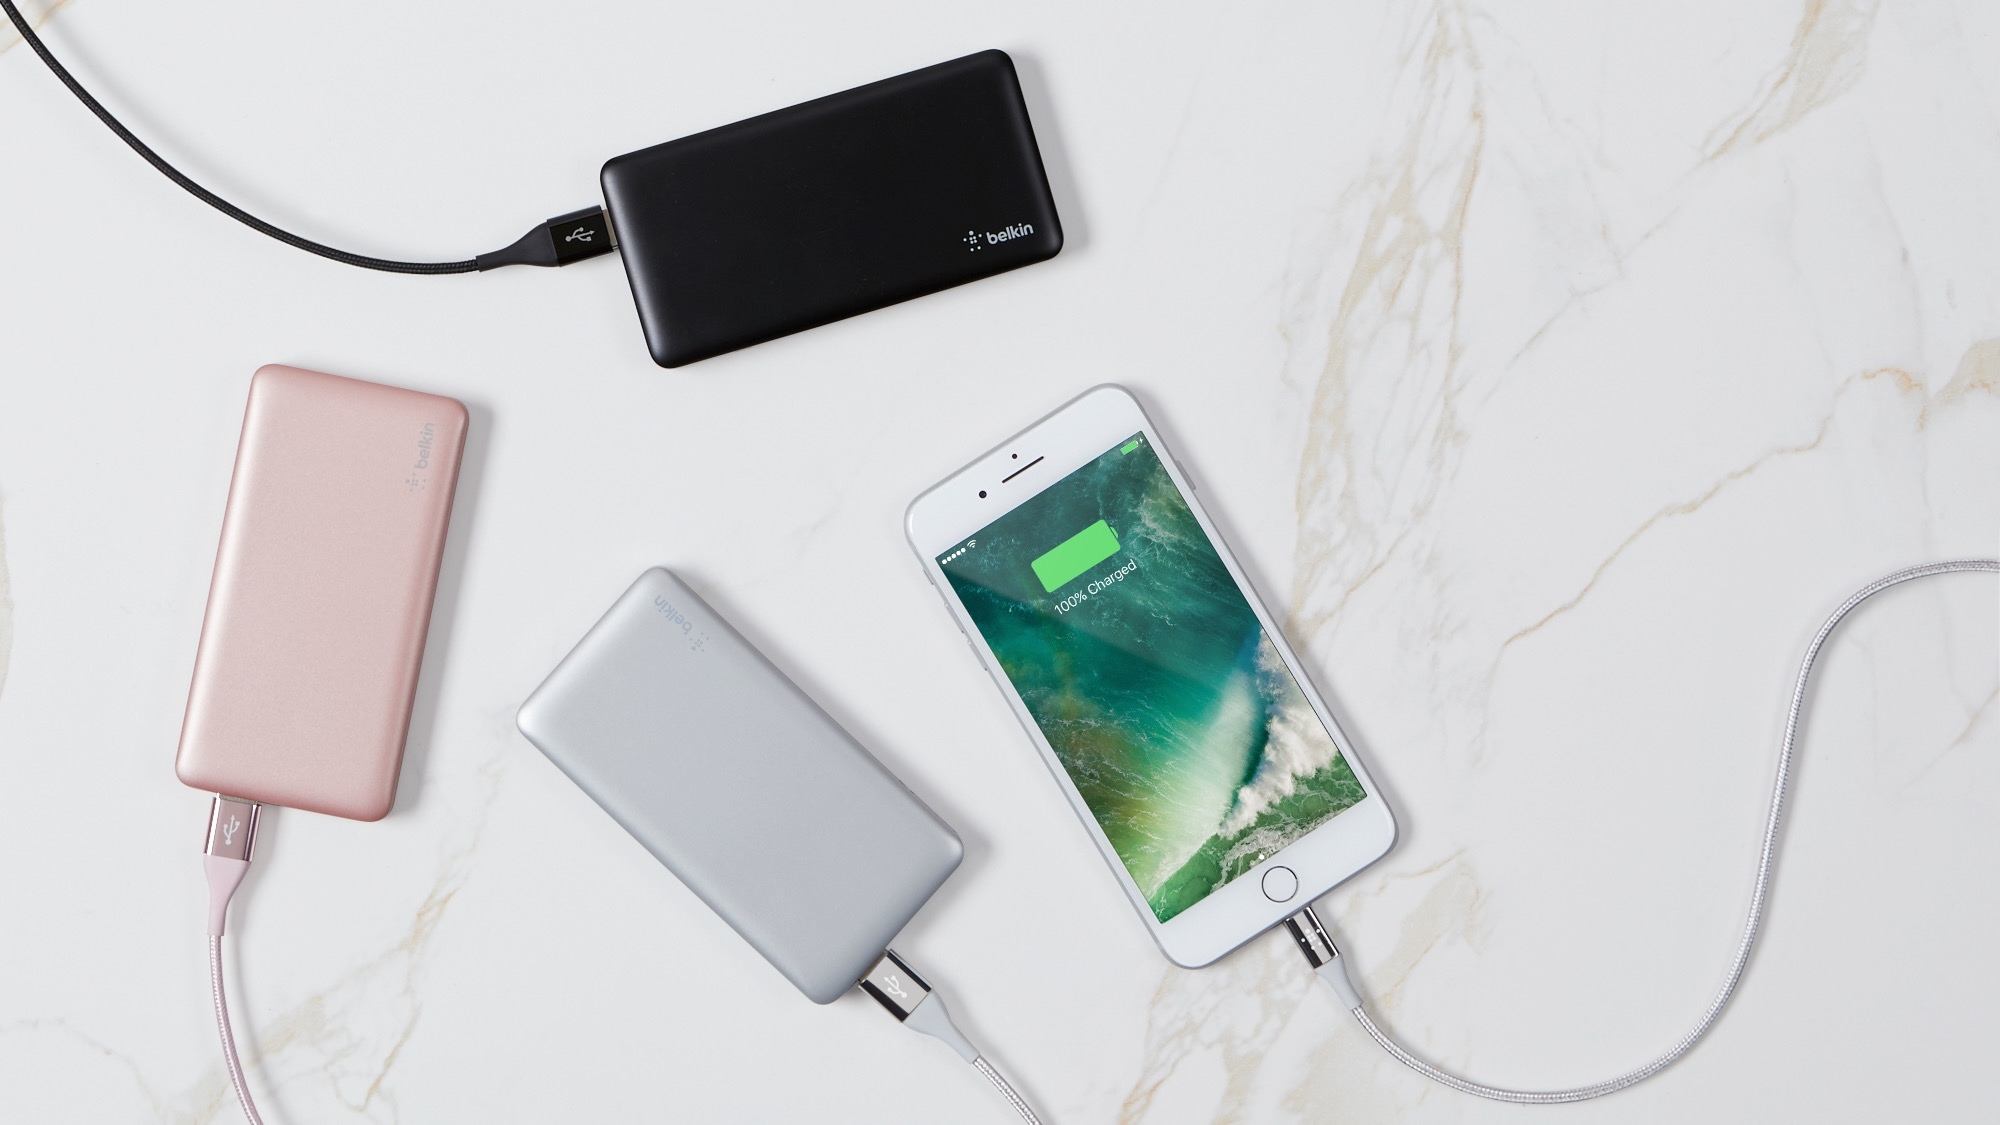 The Best Cheap Power Bank And Portable Phone Charger Prices Deals Powerbank Anker Powercore 10000mah Black With Quick Charge 30 Offers 2018 Techradar